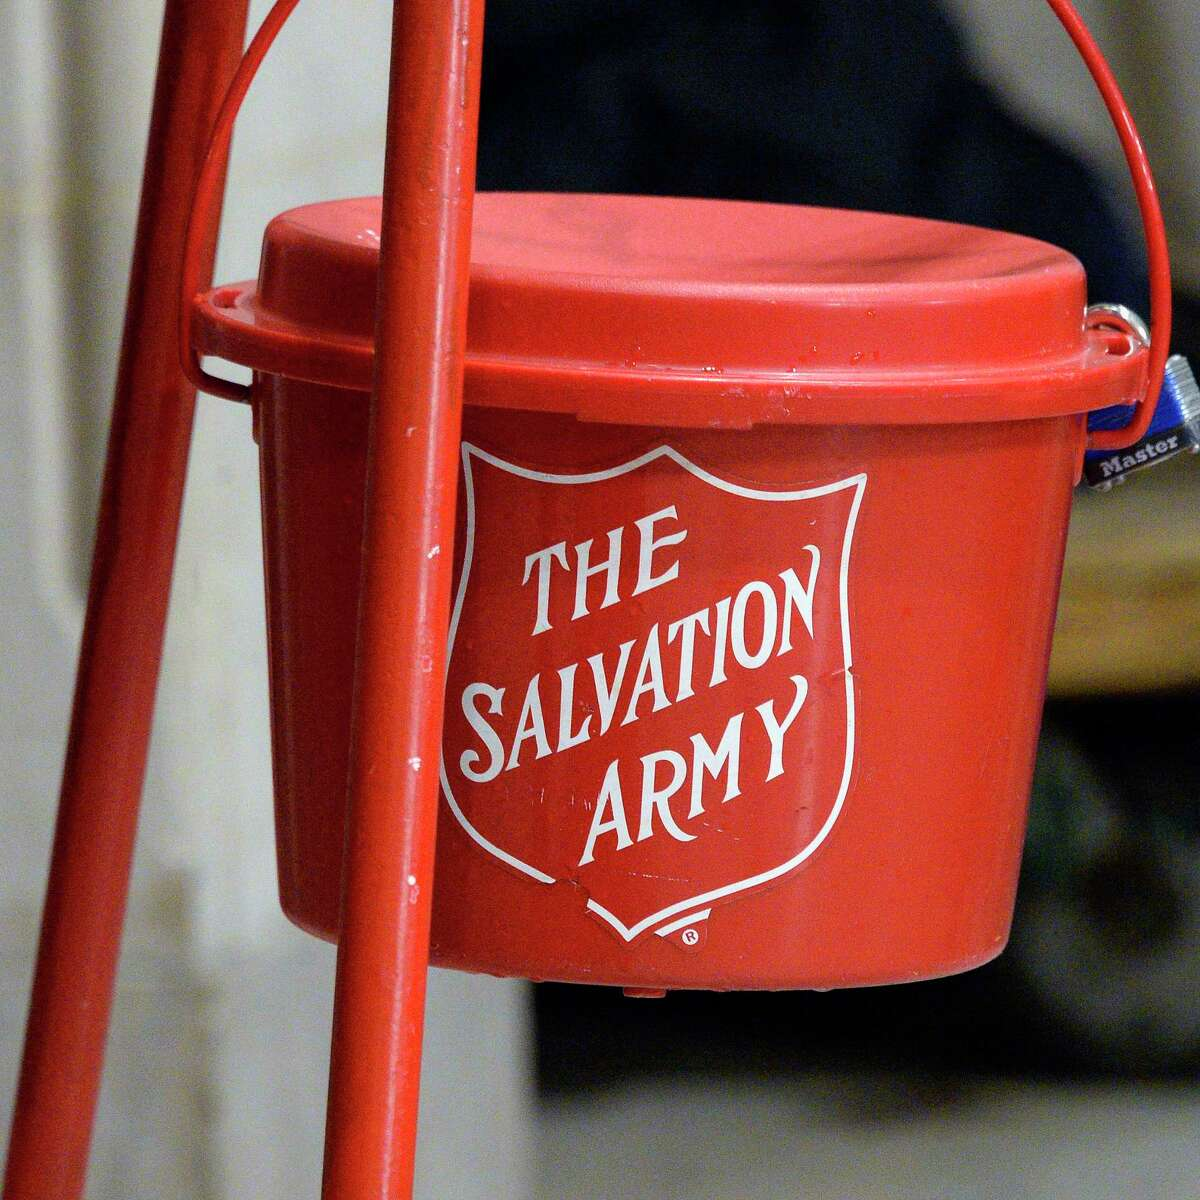 A Salvation Army red kettle during a ceremony at City Hall to launch their Annual Red Kettle Campaign Tuesday Nov. 13, 2018 in Albany, NY. (John Carl D'Annibale/Times Union)